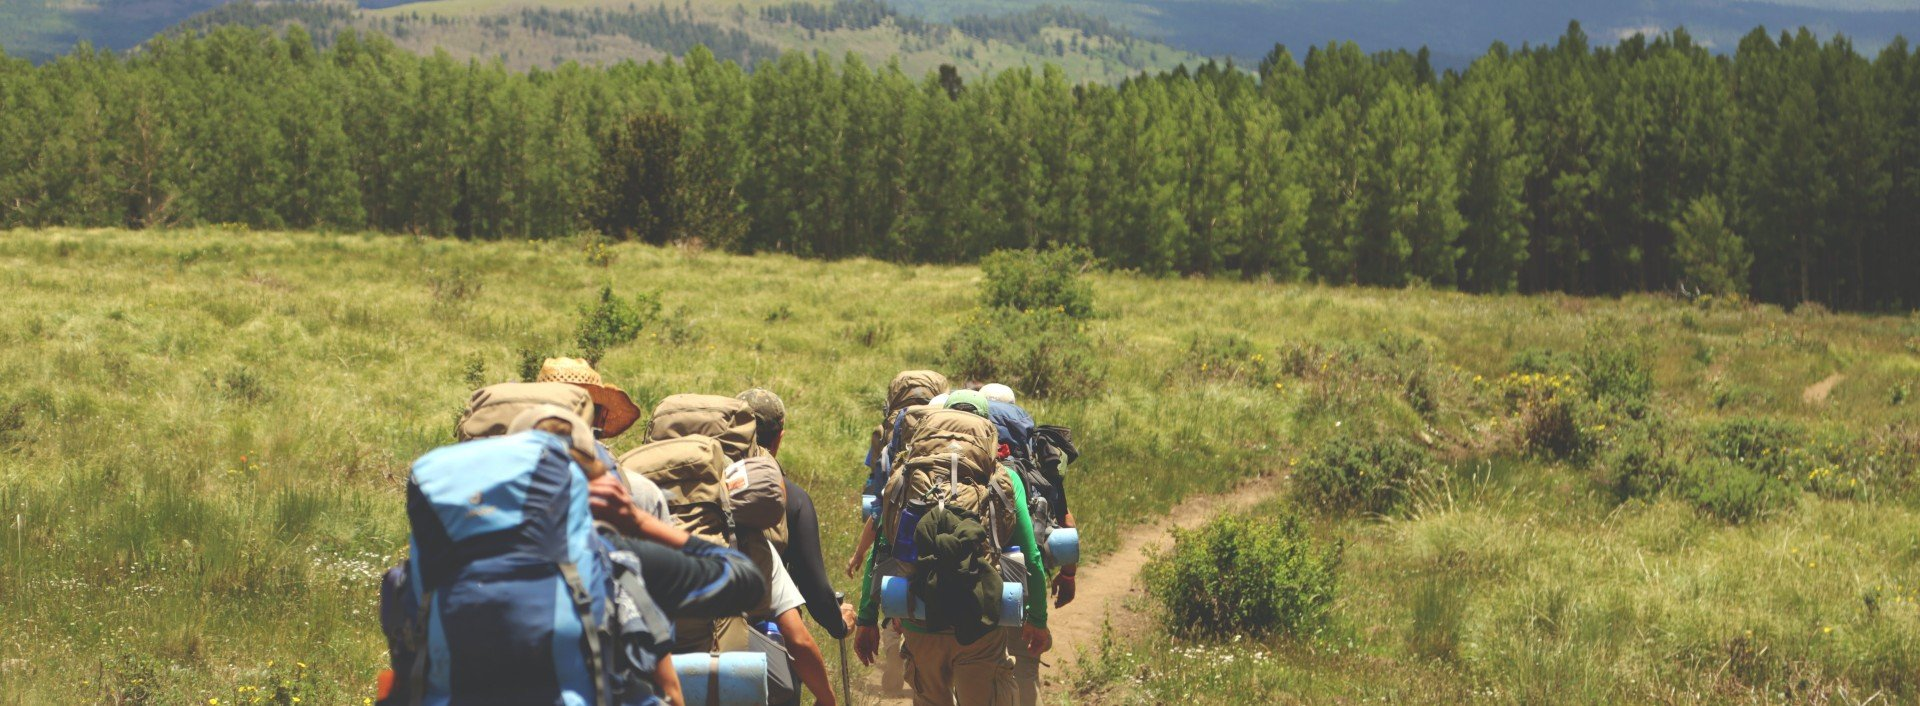 Hiking Vocabulary: A small group of hikers walk along a trail with backpacks.